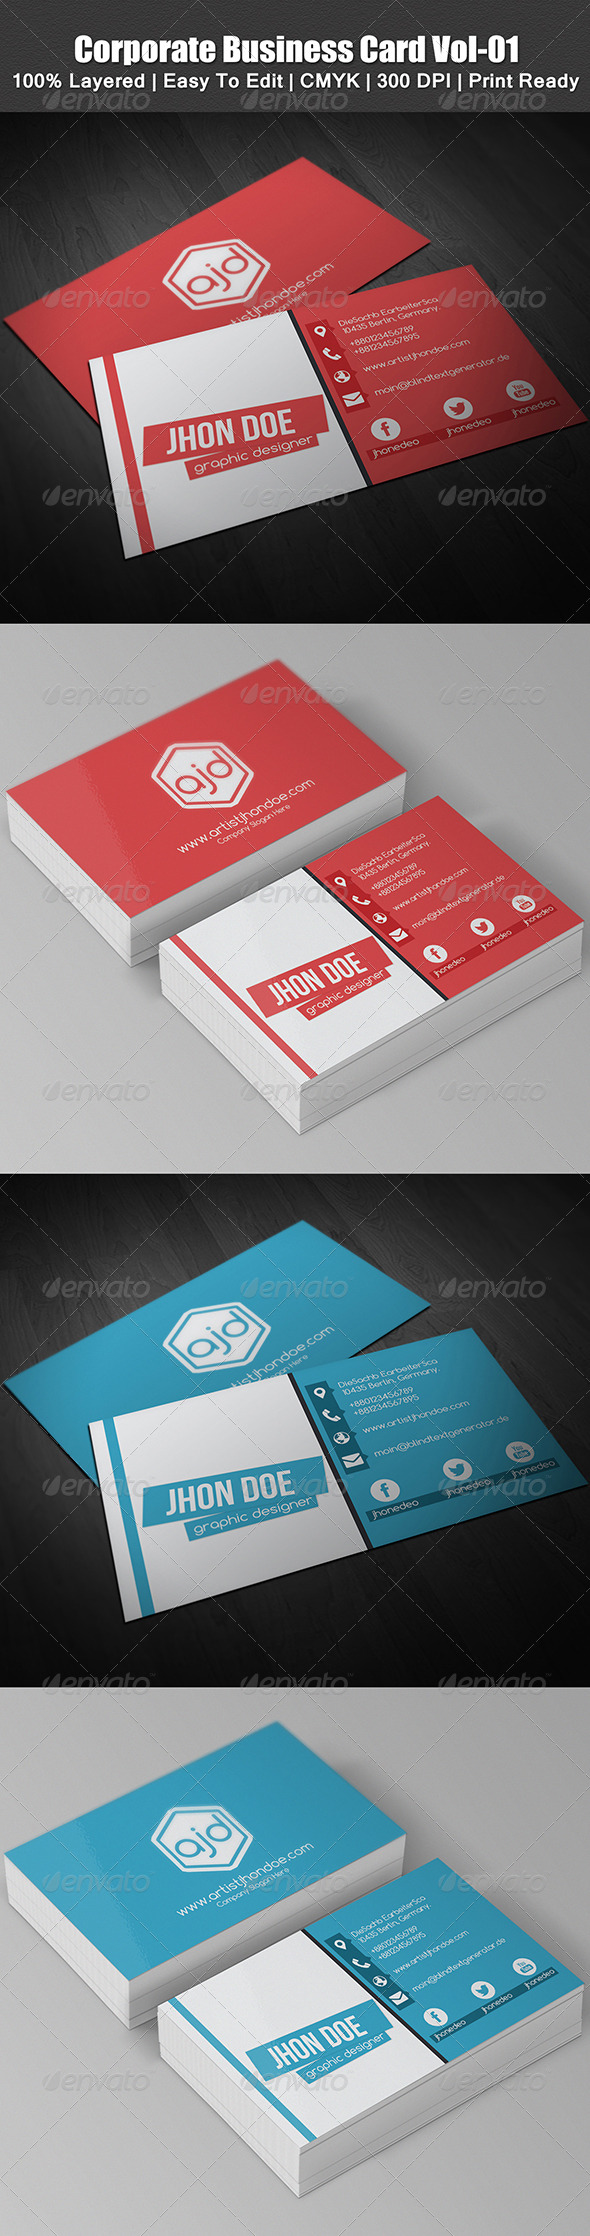 GraphicRiver Corporate Business Card Vol-1 5649244